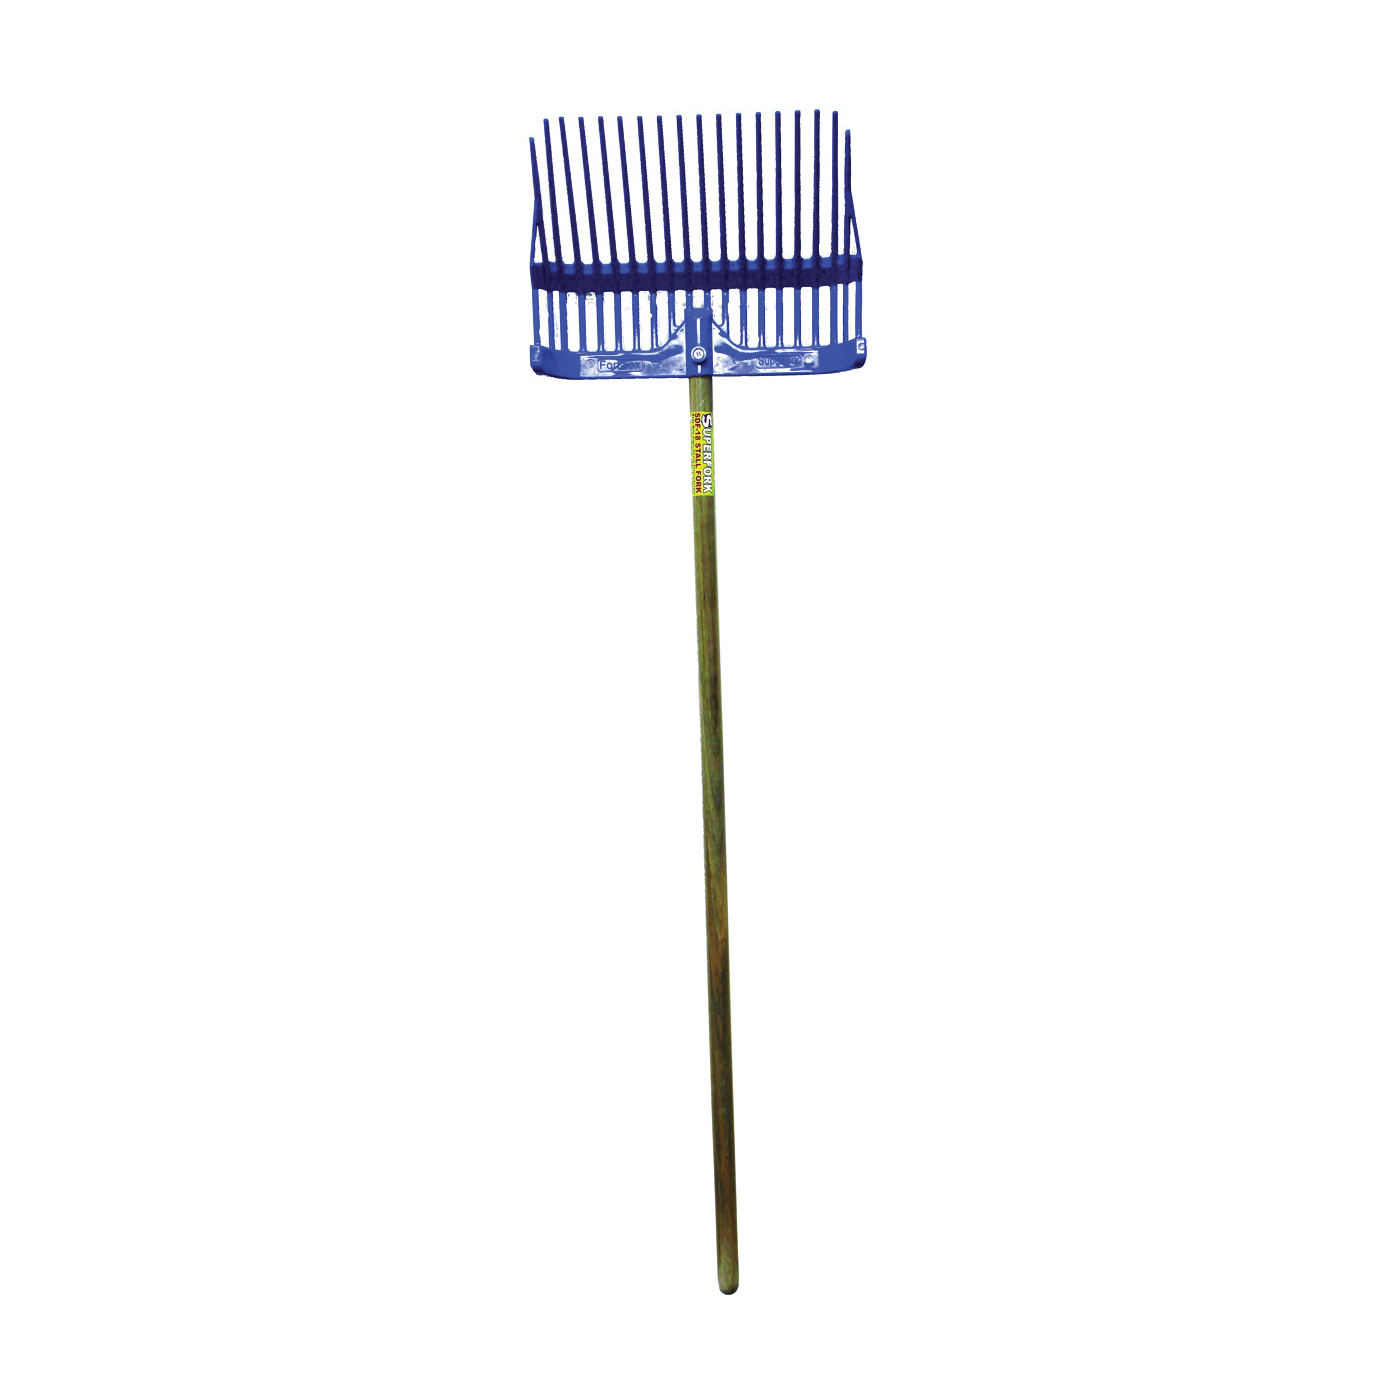 Picture of FORTEX-FORTIFLEX 1308100 Stall Fork, Plastic Tine, Polycarbonate Handle, Blue